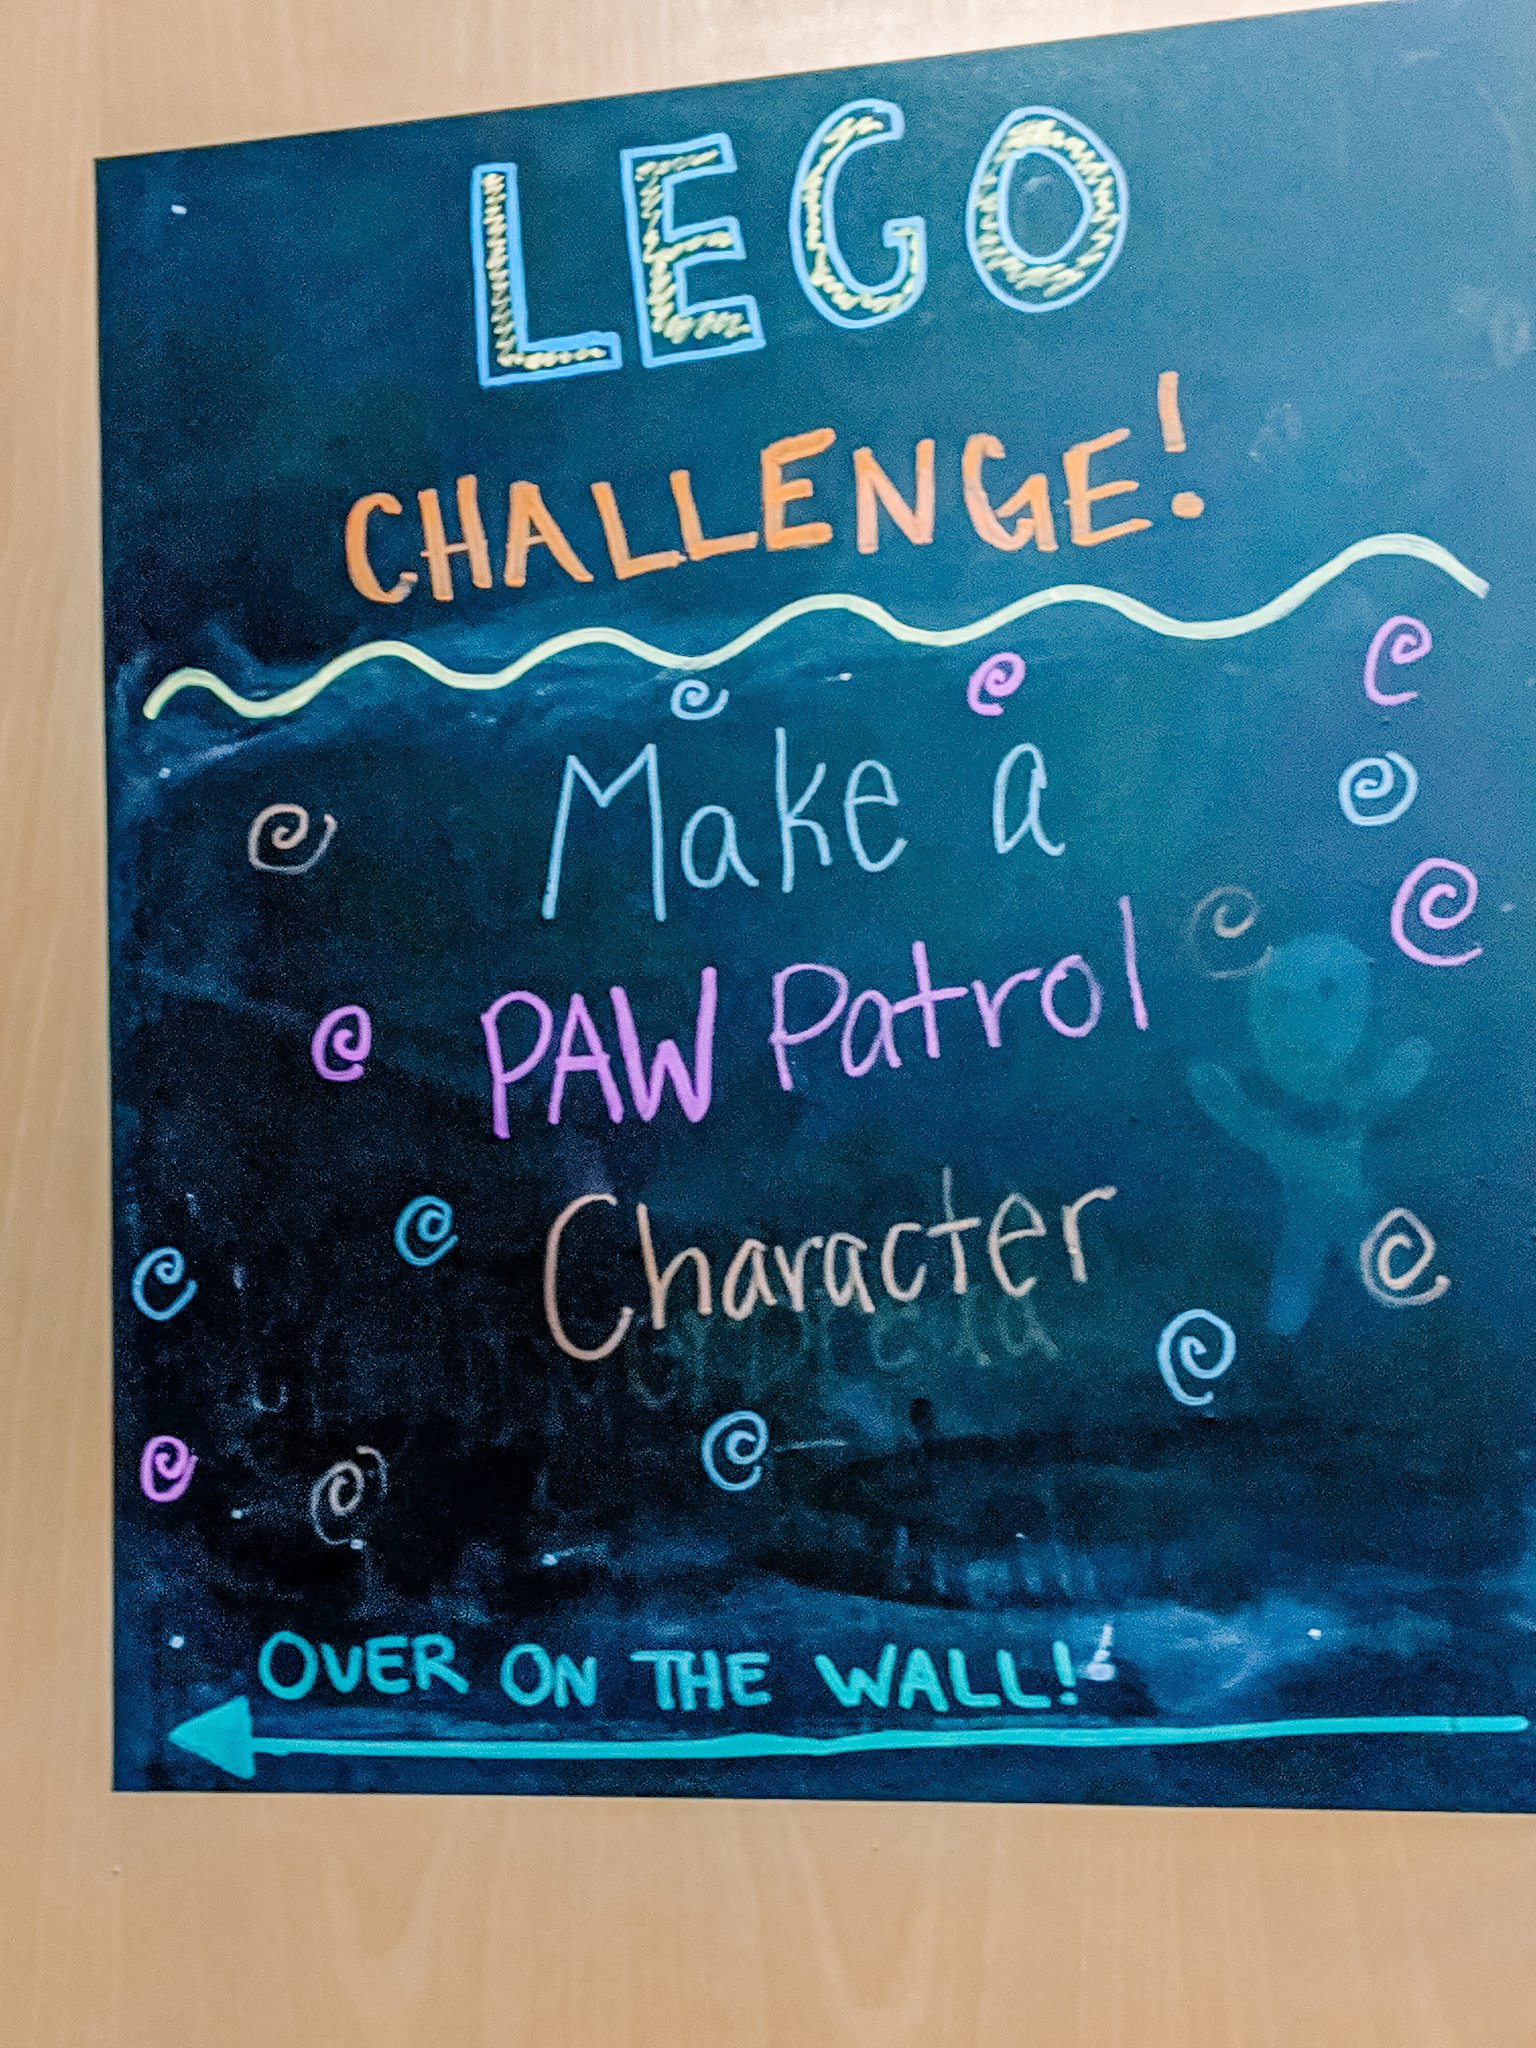 Sign at museum for Lego challenge